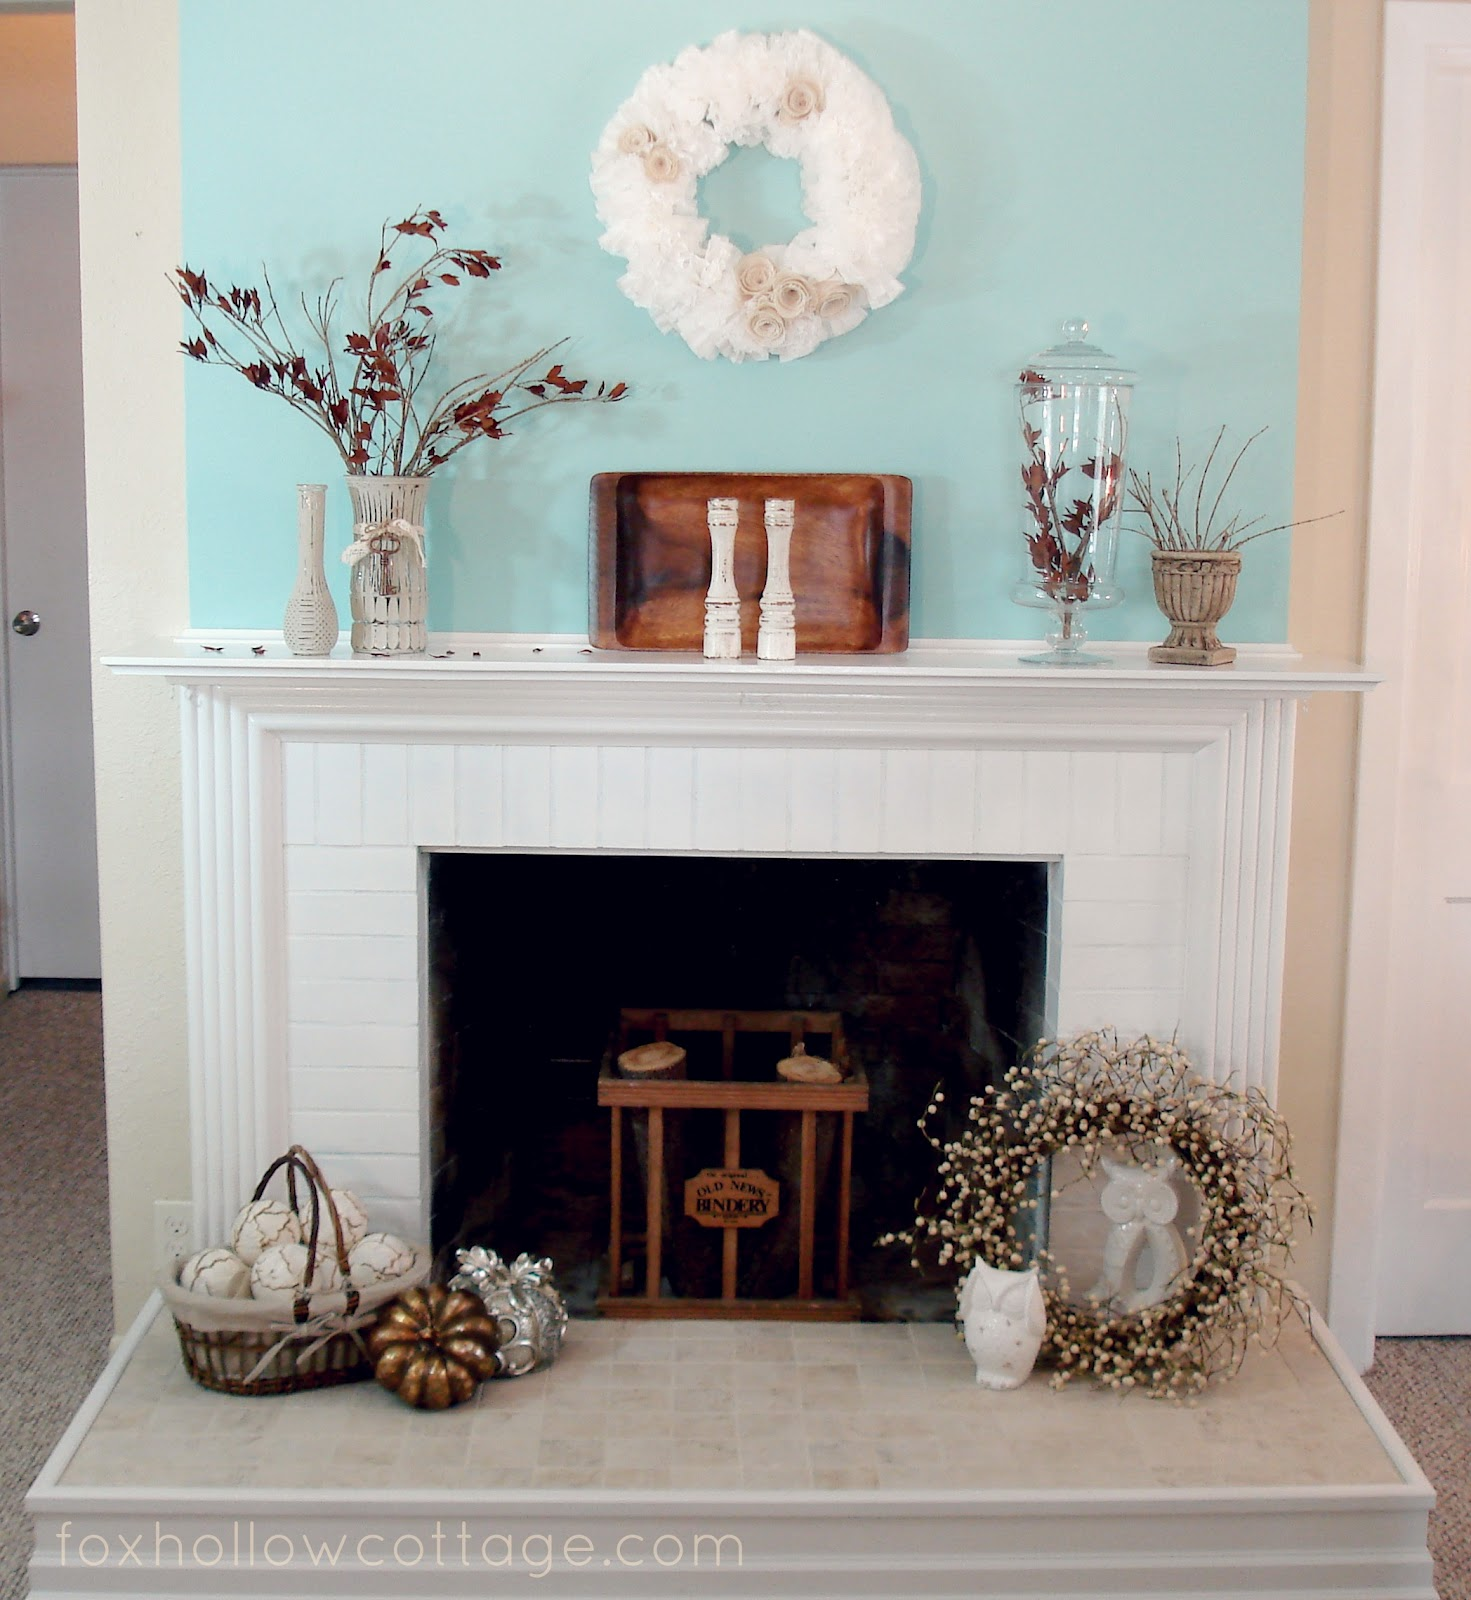 Fireplace Decorating Ideas Photos: My {little Bit Of} Fall Mantel